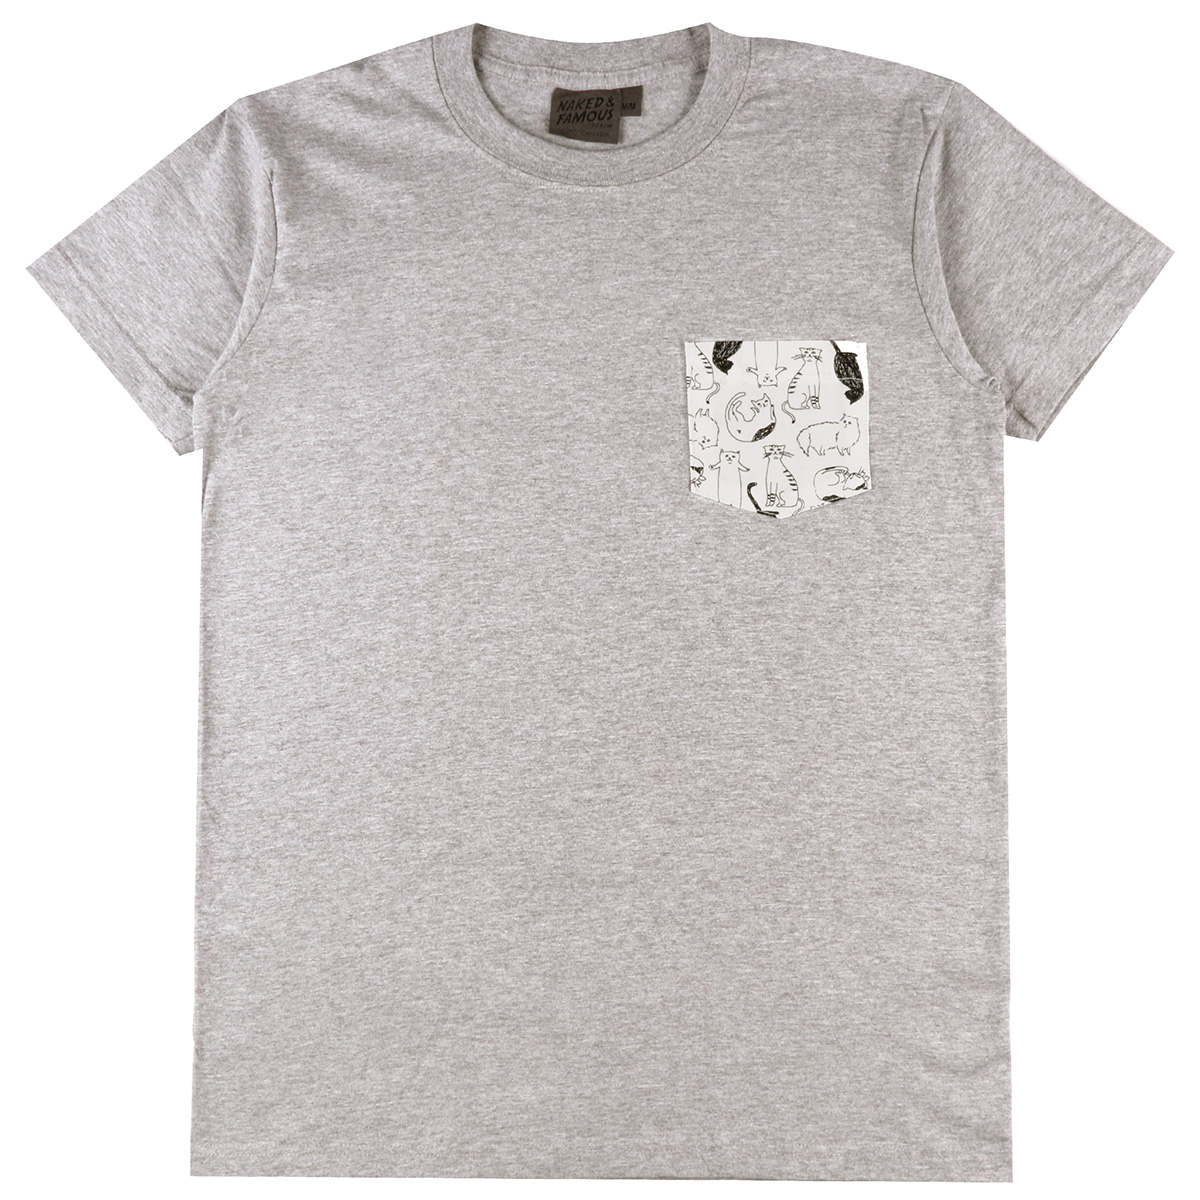 HEATHER GREY + CATS SKETCHES - Pocket Tee